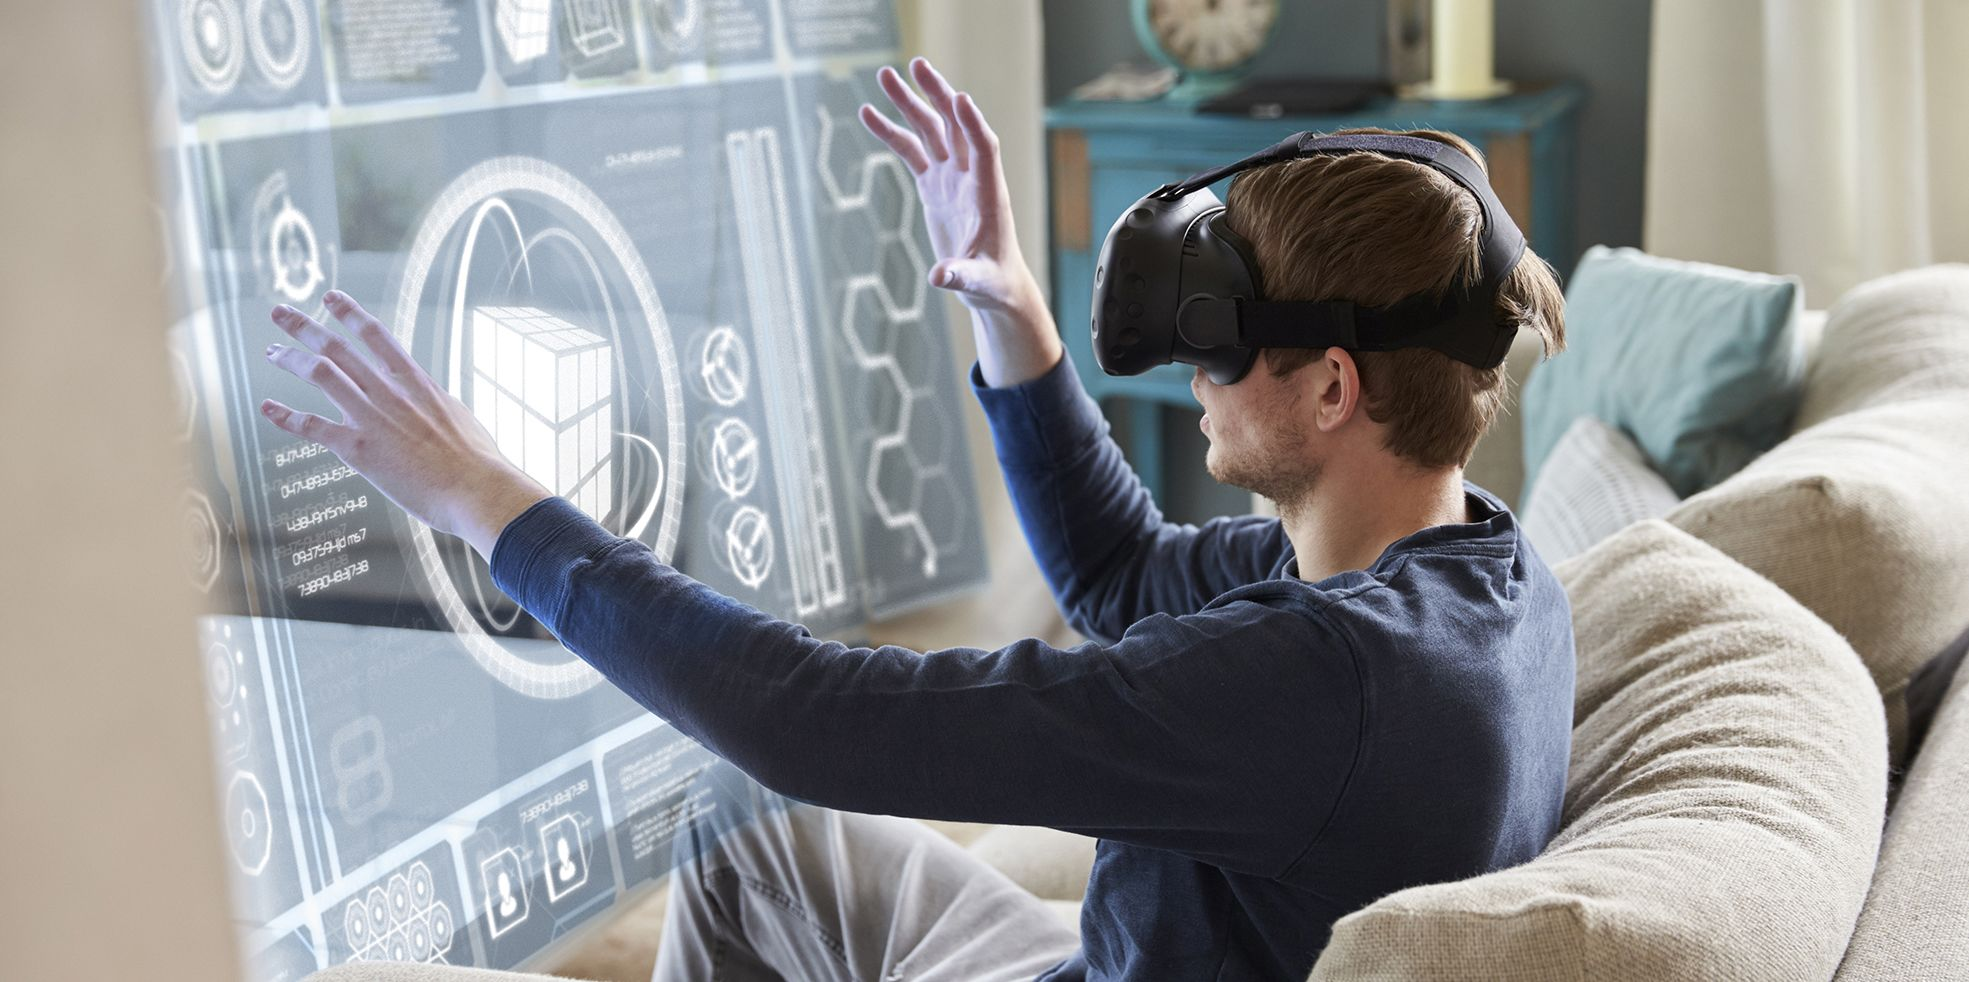 Honey, I shrunk the scientists: Virtual immersion in the microscopic reality